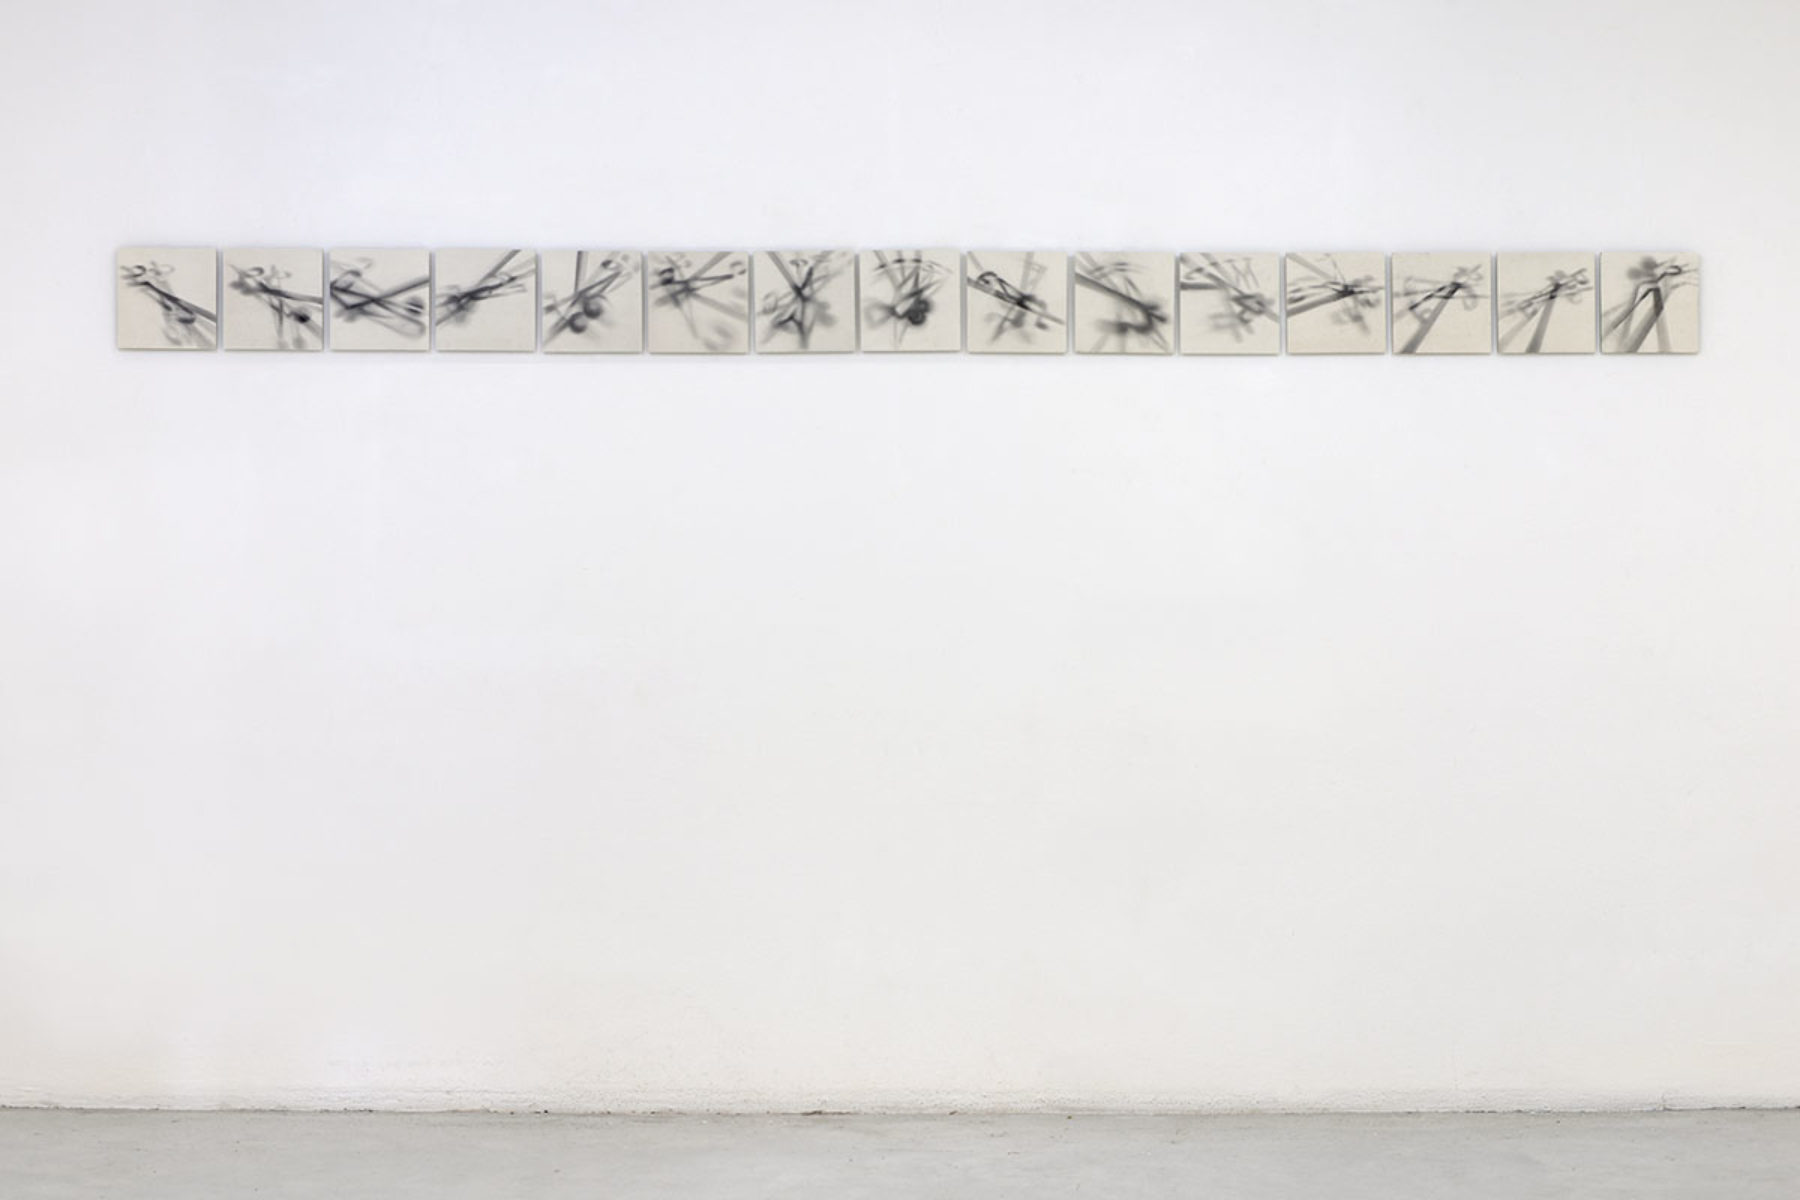 Antonio Marchetti Lamera, Raggi ombrosi, 2019, graphite on paper, 15 elements, 20 x 20 cm each, Studio la Città, Verona, ph. M.A. Sereni